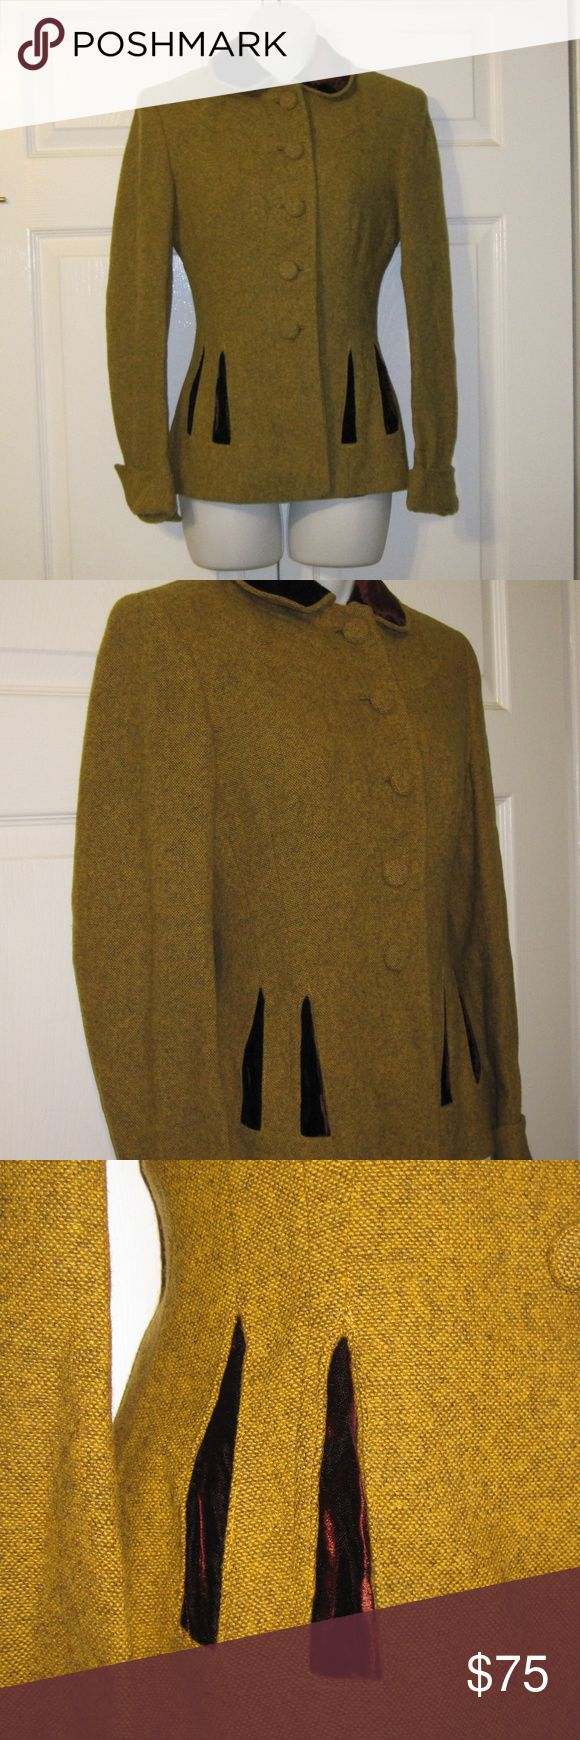 Vintage Women's Tweed Blazer Brown Velvet S XS Vintage Women's Blazer Jacket Olive Velvet S XS  Gorgeous women's blazer from Miller Bros in Chattanooga.  Looks to be around the 1950s or 1960s. Miller Bros was a very high-end department store that closed in the mid 1980s. The color is a olive green/light brown tweed with rich mahogany brown velvet on the collar and on the front. There is no tag size or fabric tag in this, but it is either a small or xsmall. Bust - 34 , Waist - 28 Hips - 36…